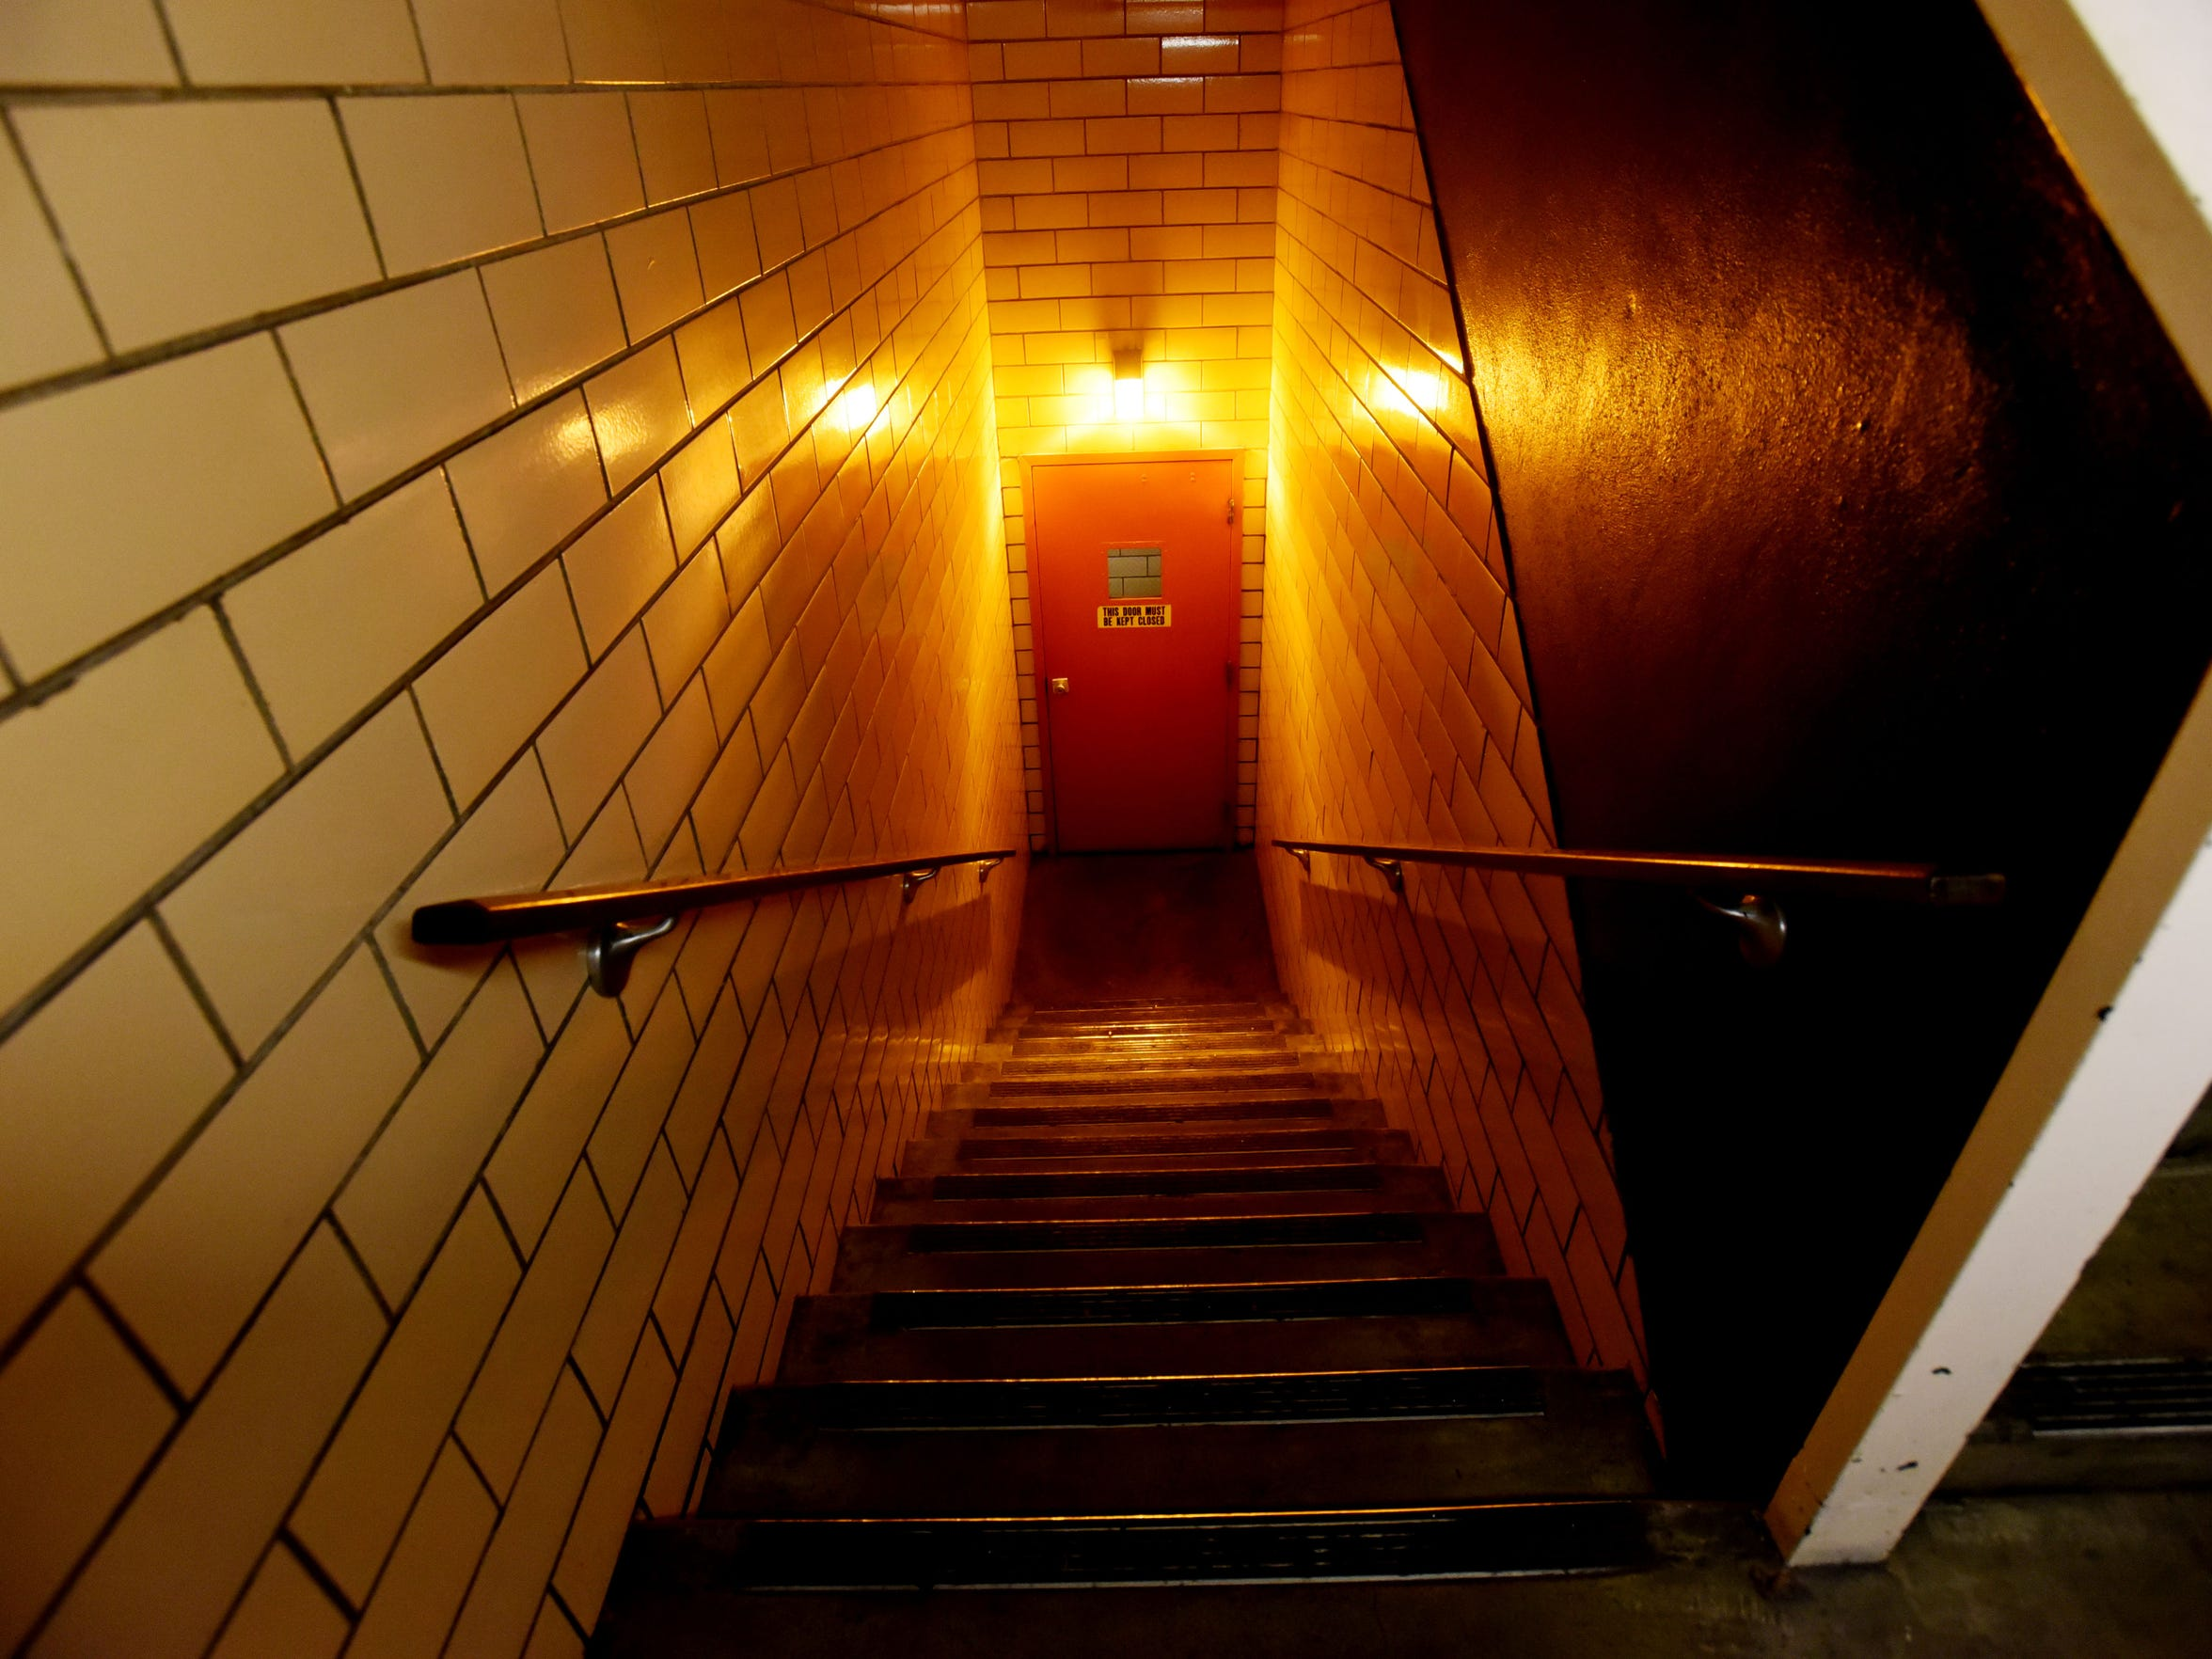 Stairs leading to the basement of the old Shreveport Times building located at 222 Lake Street in downtown Shreveport. It was listed as number 43 on the 1960's Community Shelter Plan map for Caddo Parish.